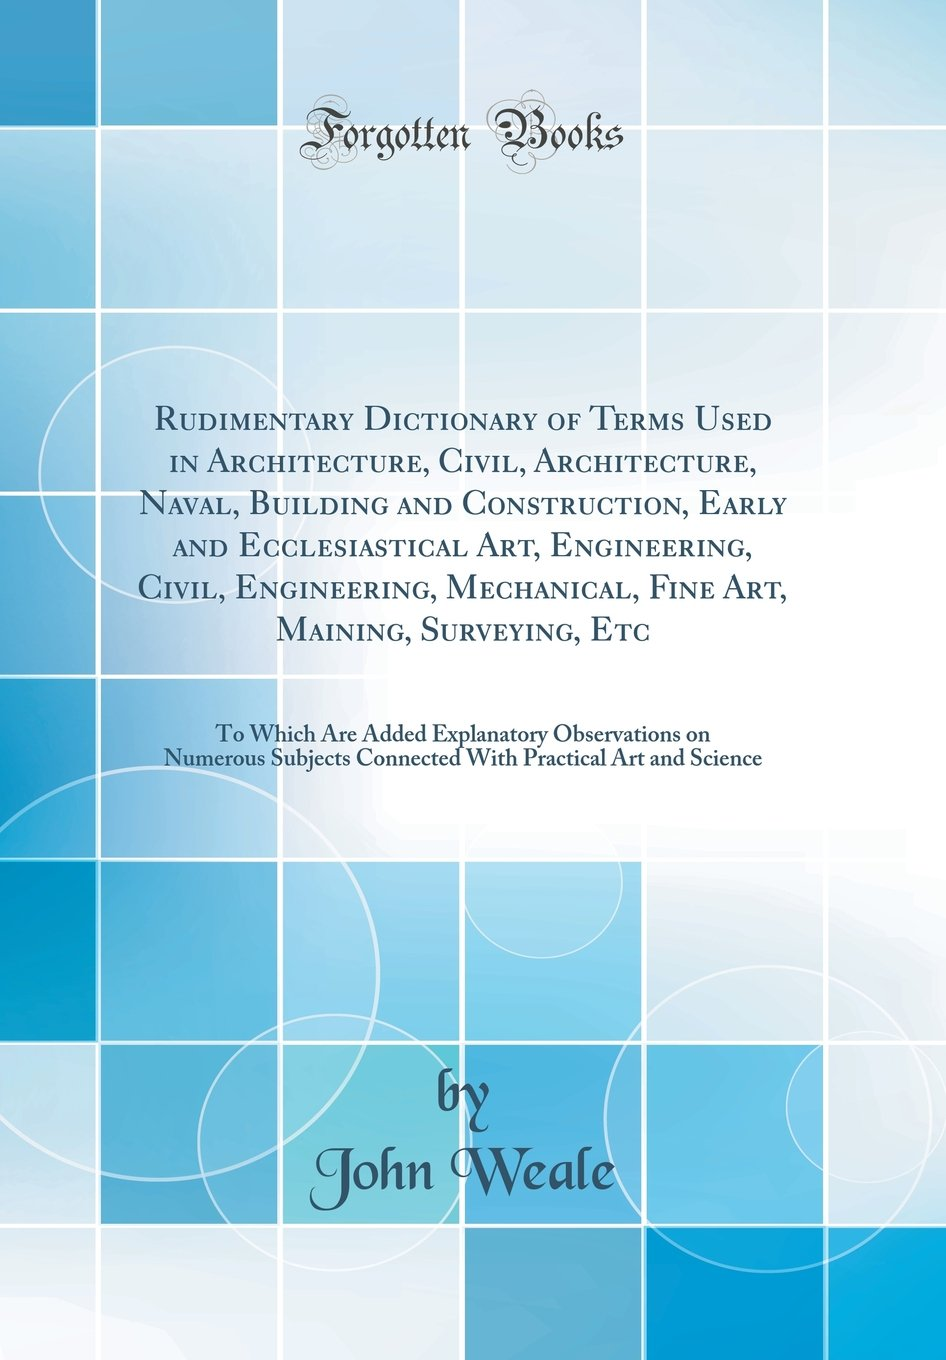 Rudimentary Dictionary of Terms Used in Architecture, Civil, Architecture, Naval, Building and Construction, Early and Ecclesiastical Art, ... Etc: To Which Are Added Explanatory Obser pdf